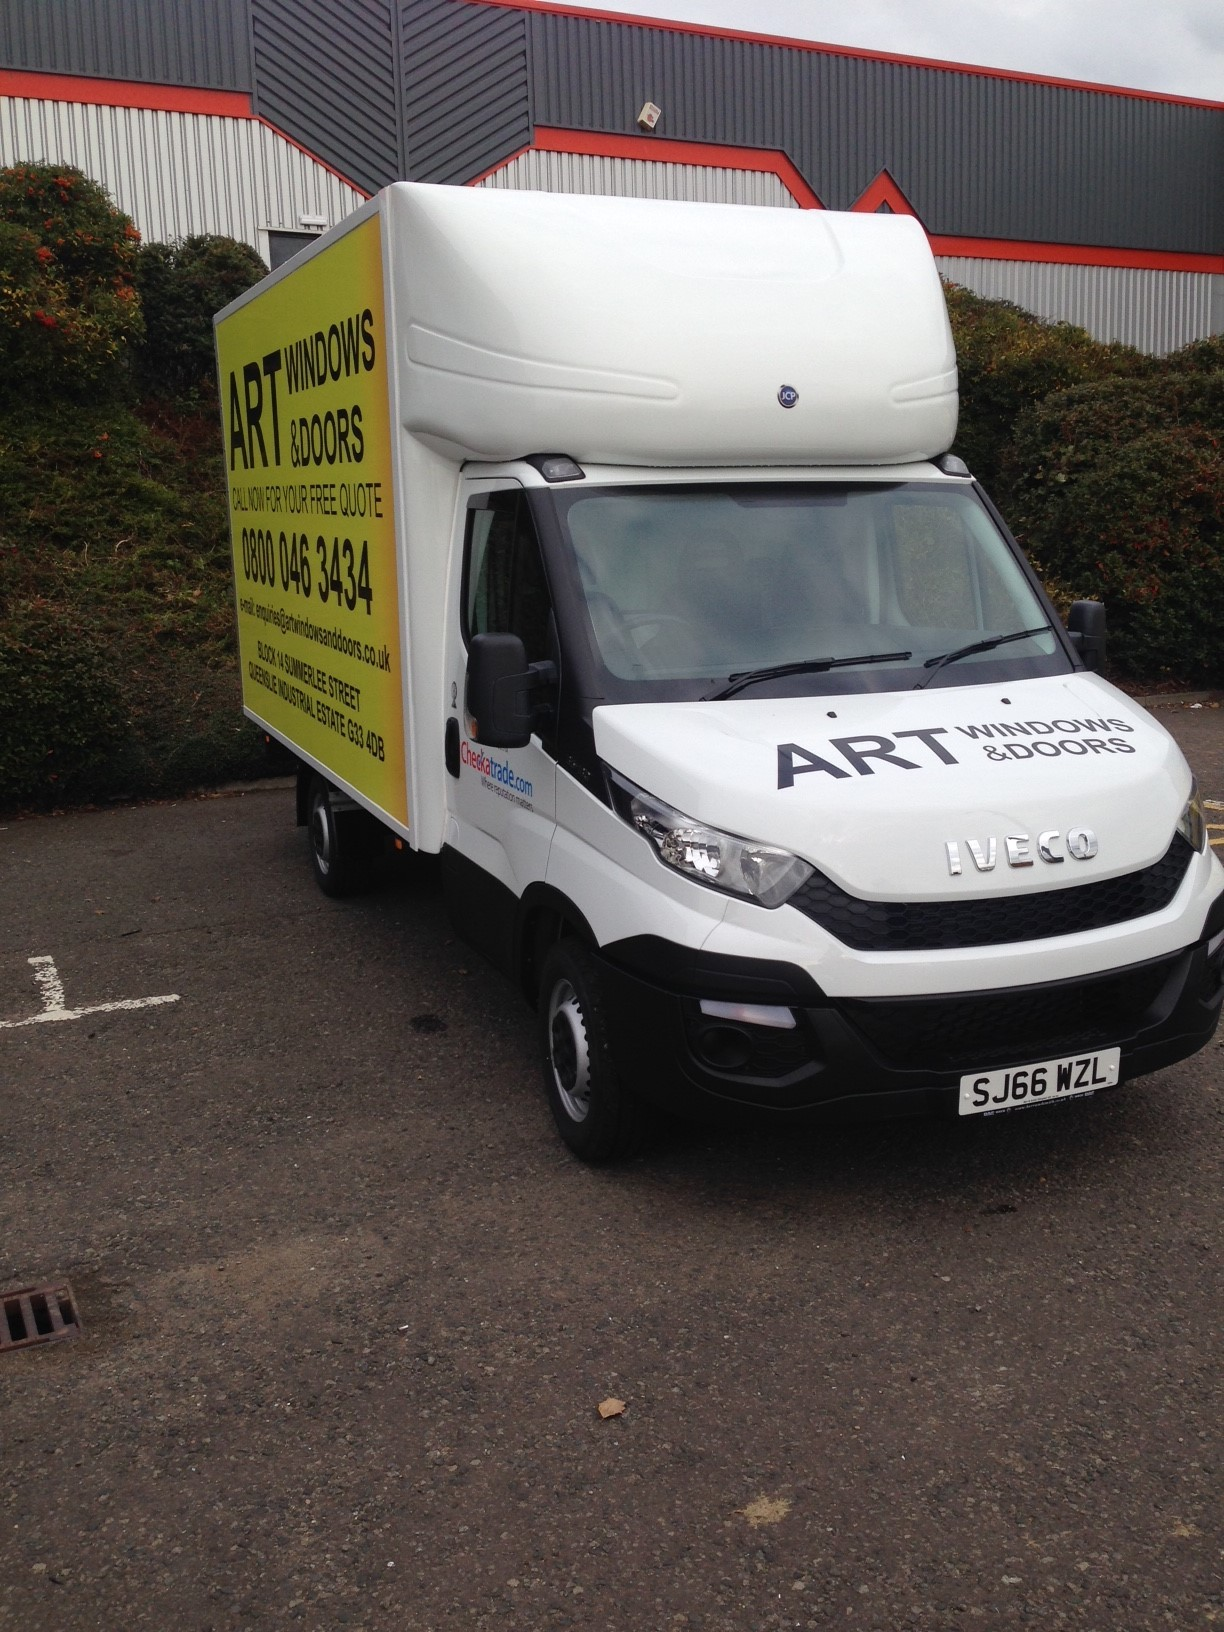 glasgow van signs, vehicle graphics glasgow, stickers for cars